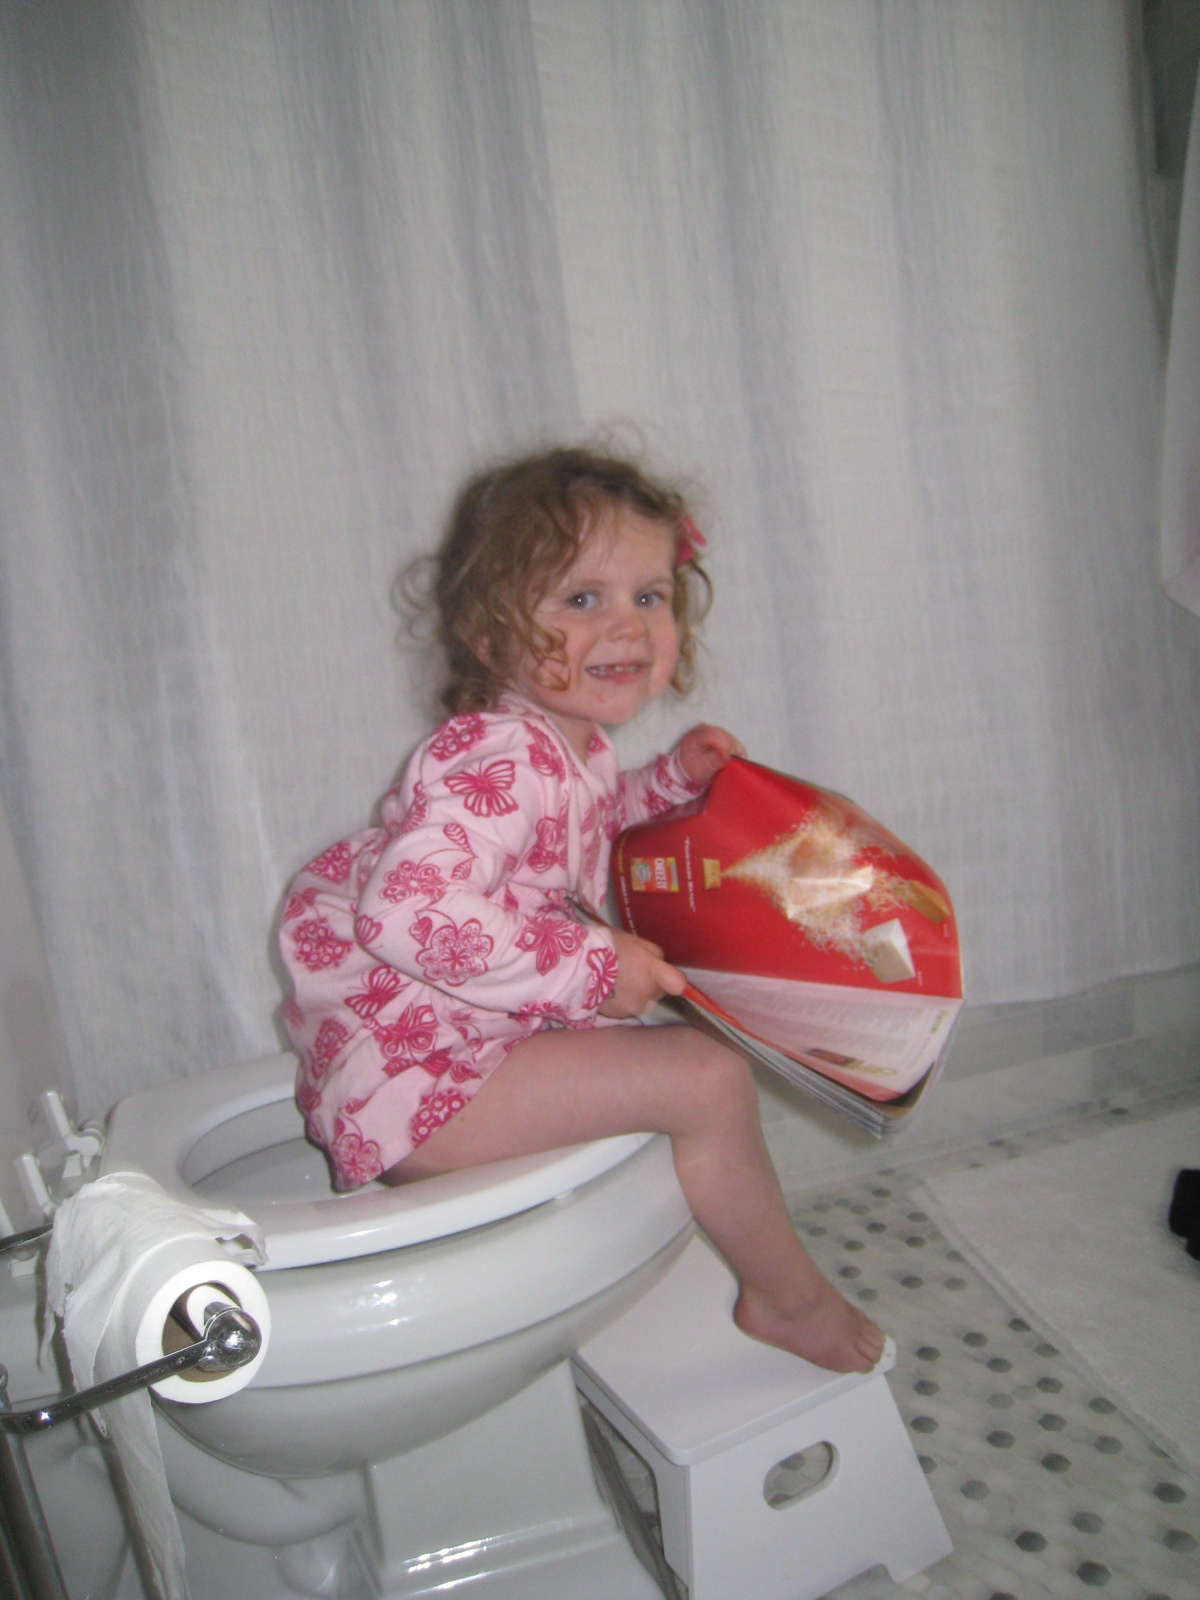 How To Potty Train A Baby Girl Potty Training Video For